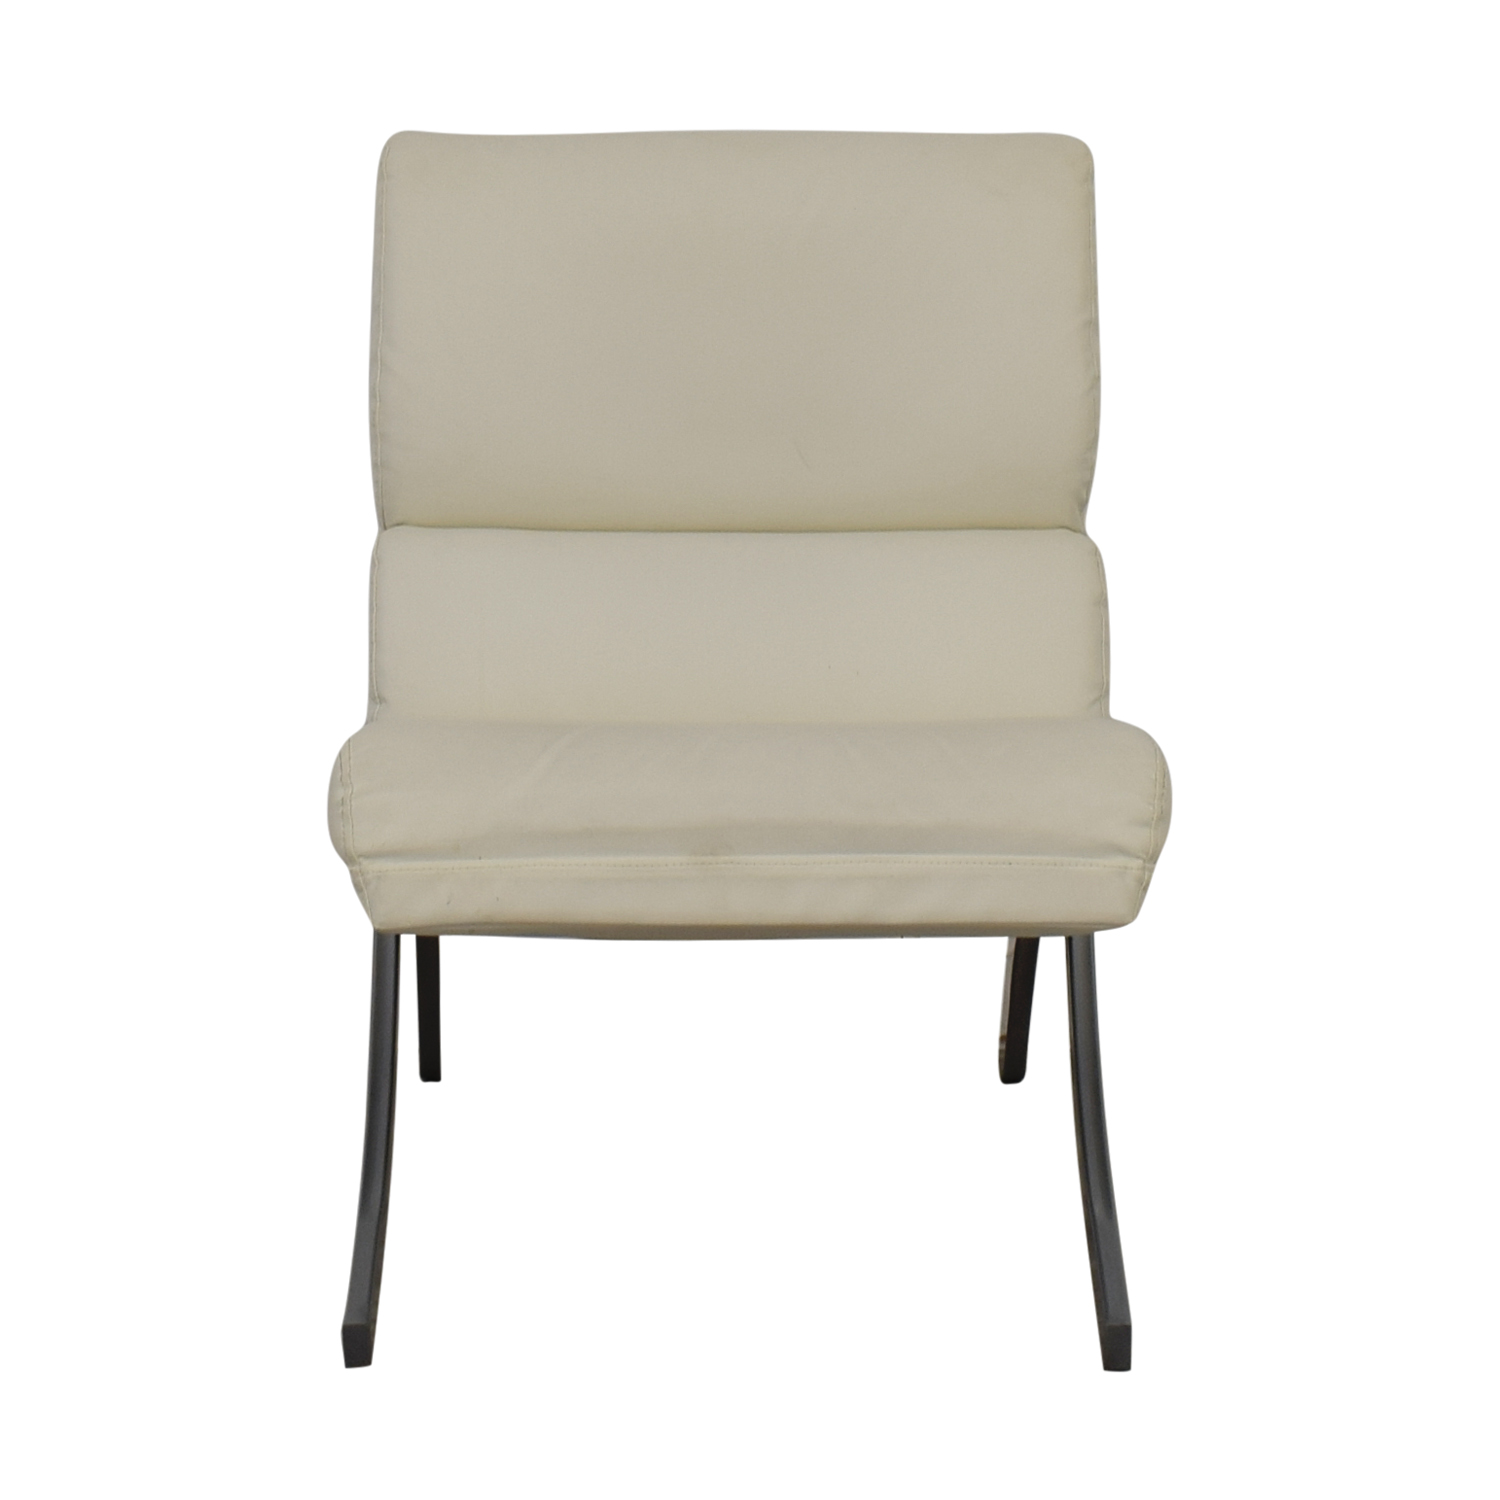 Dimensions Dimensions White Leather Accent Chair